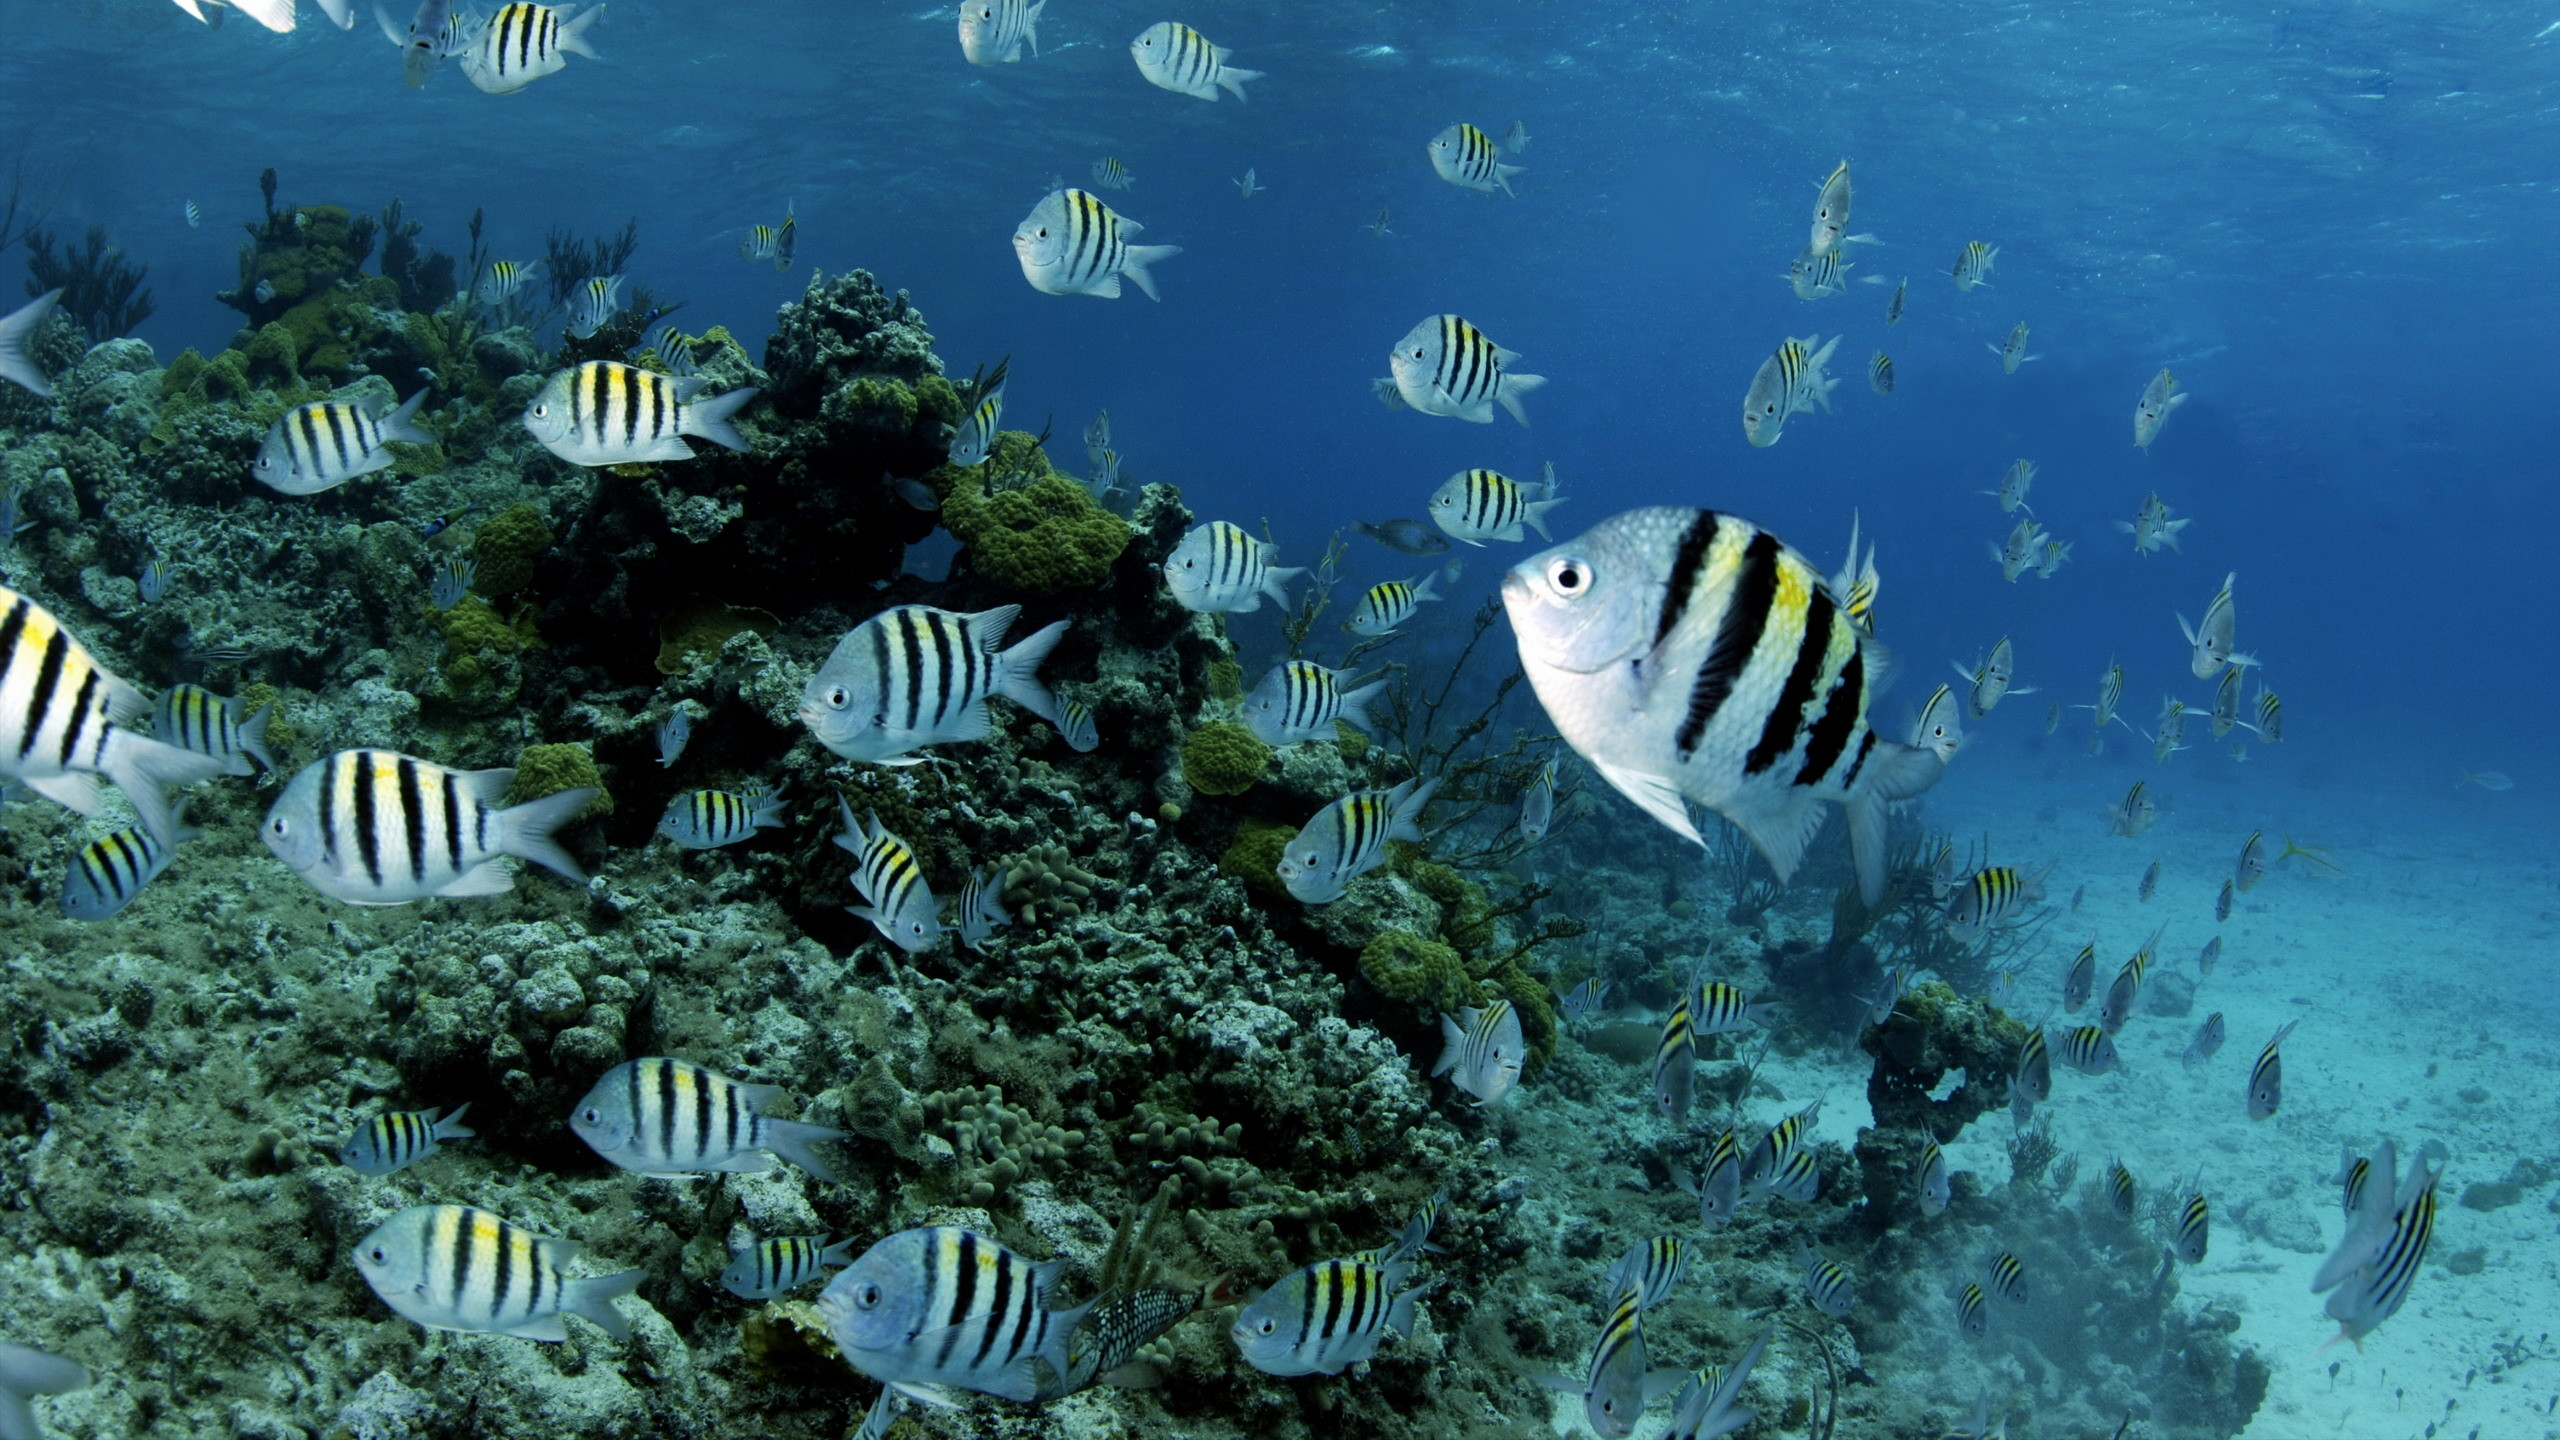 2560x1440 Animal - Fish Animal Sea Underwater Ocean Coral Wallpaper